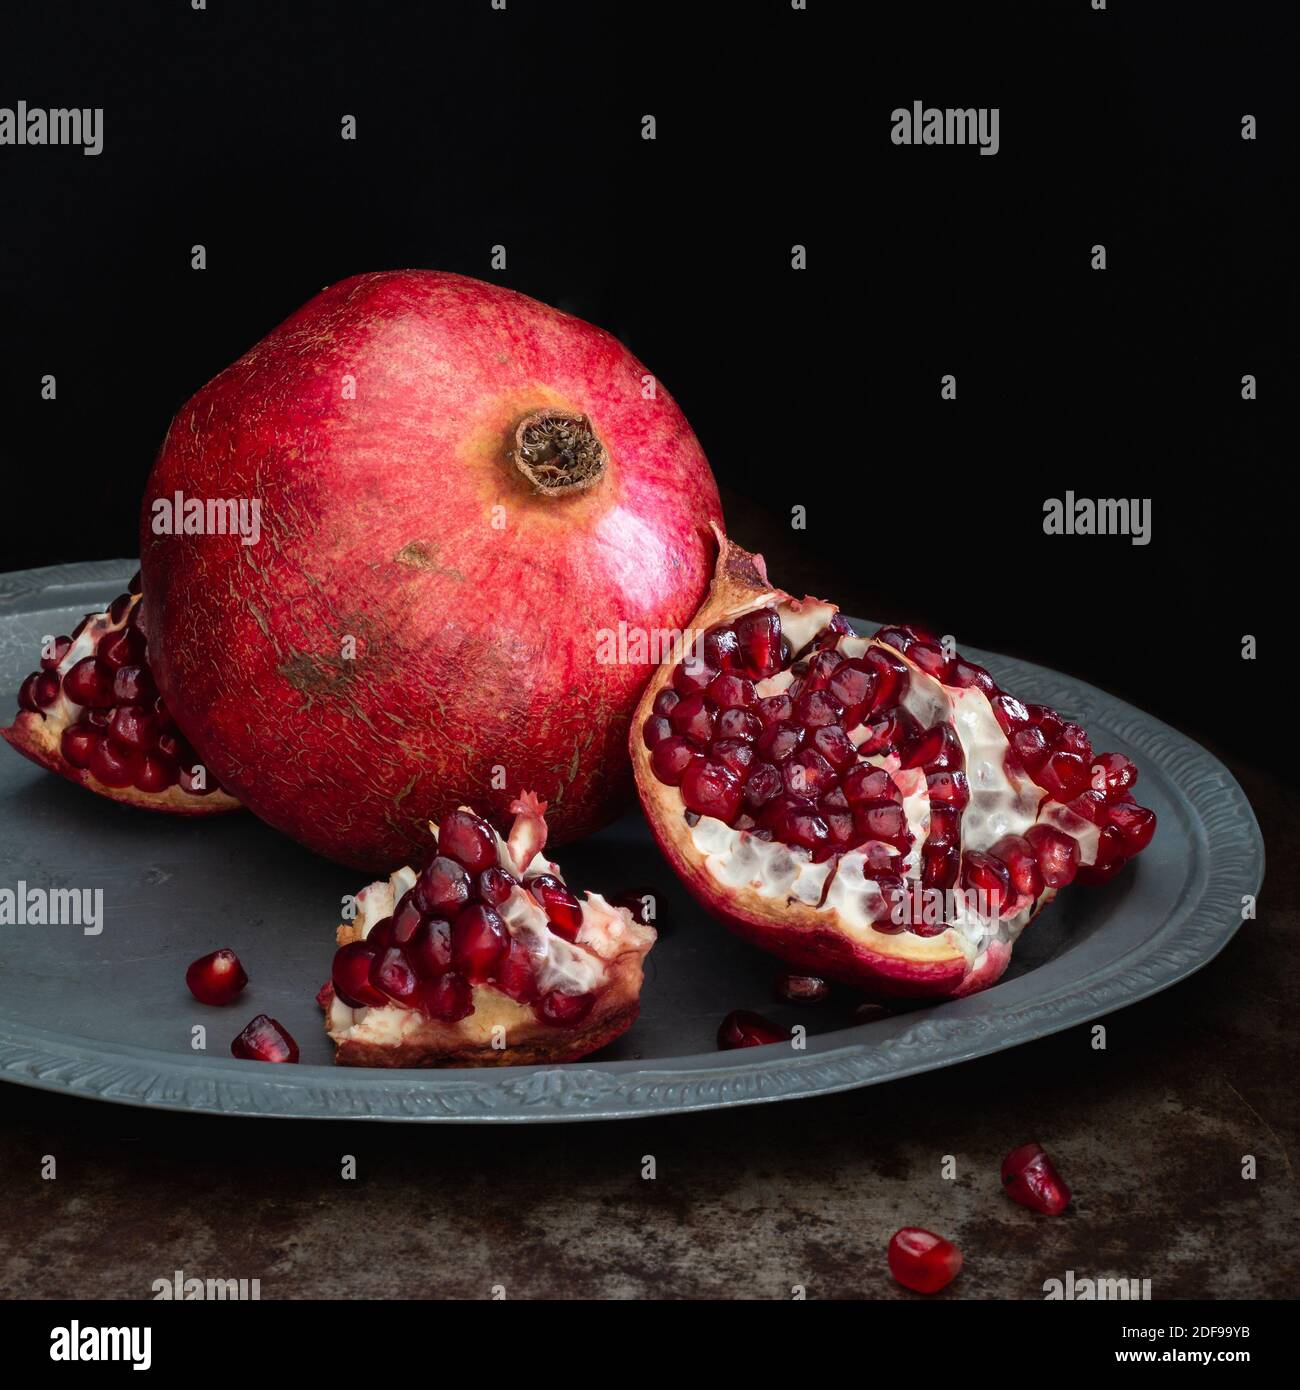 Pomegranate Fruit Whole And Open On A Silver Platter And Black Background Square Stock Photo Alamy